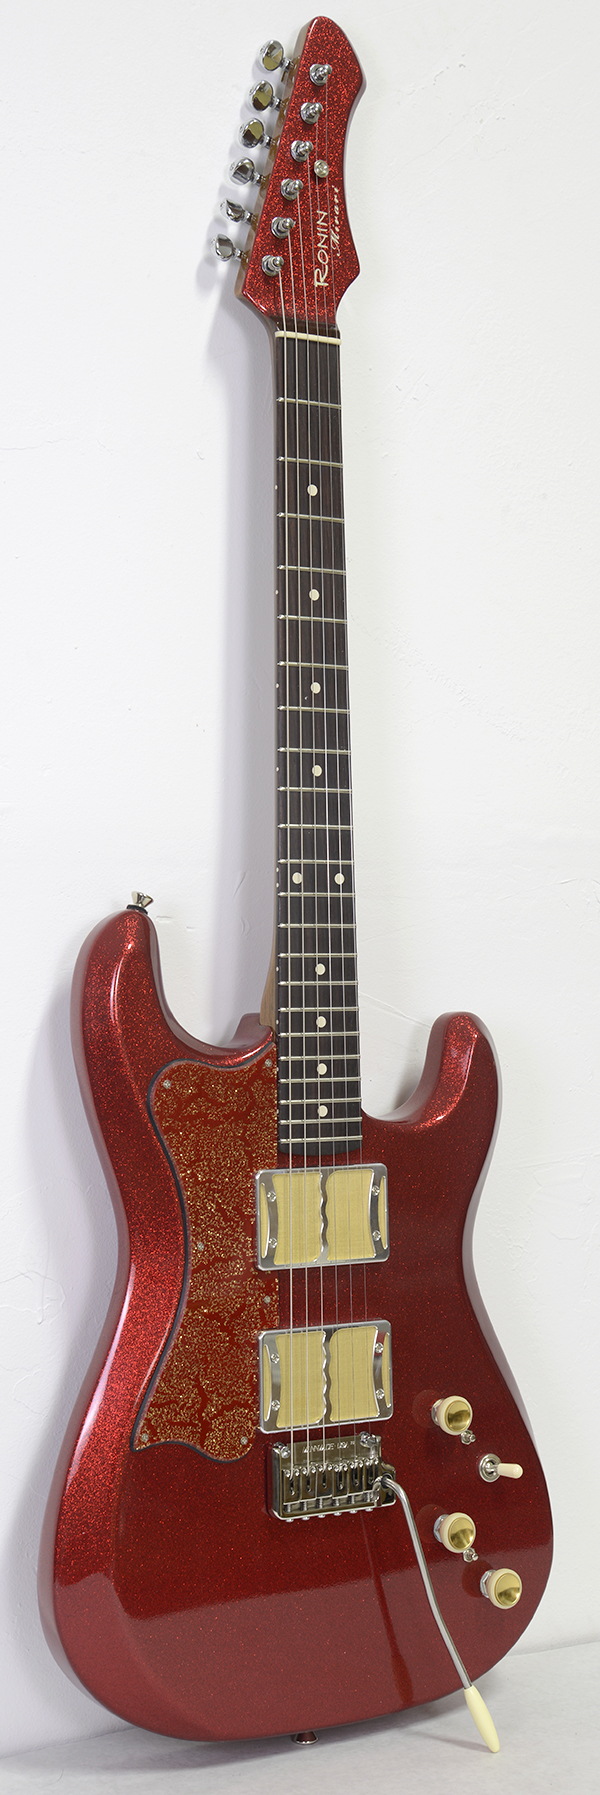 Red Sparkle Mirari Full Angle #1 WEB.jpg